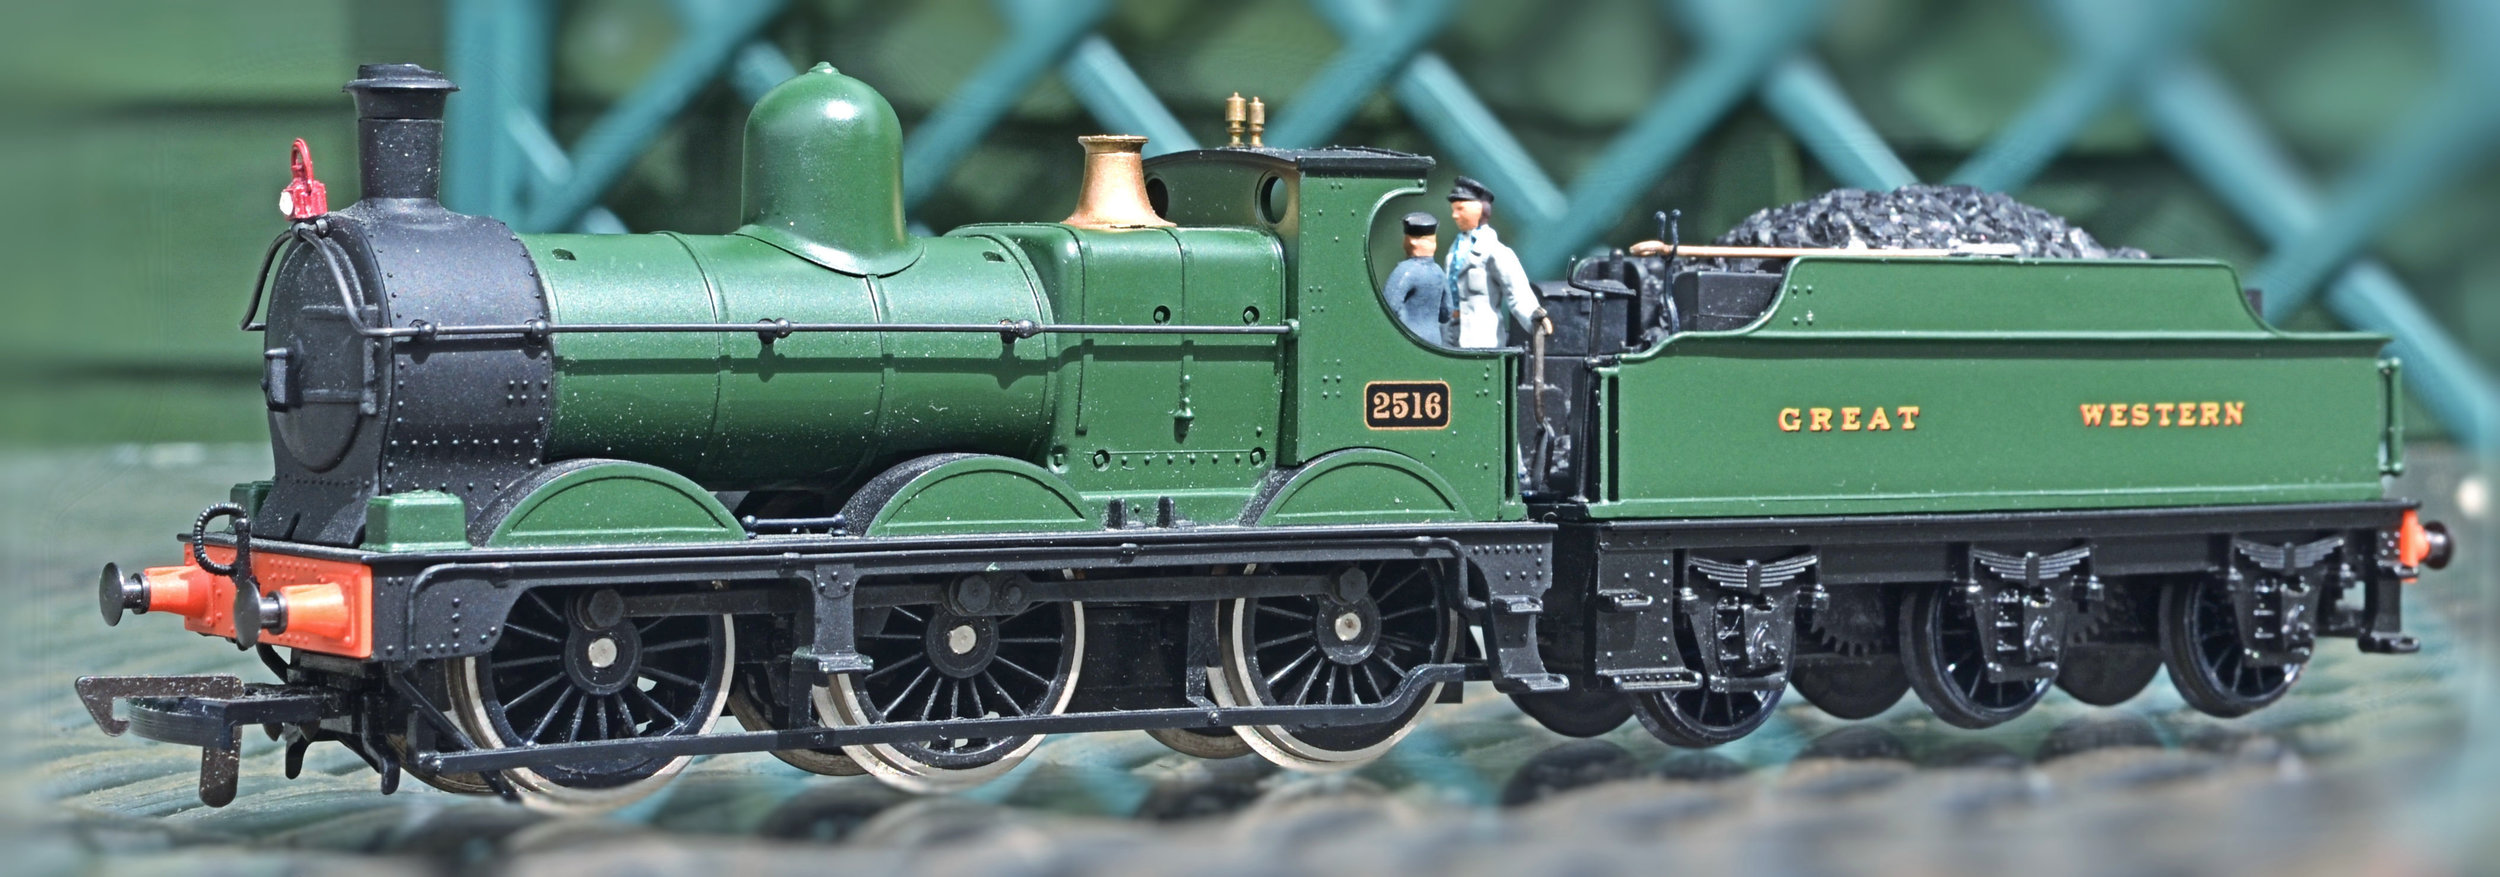 The original Mainline Model, one of the first released [since detailed].